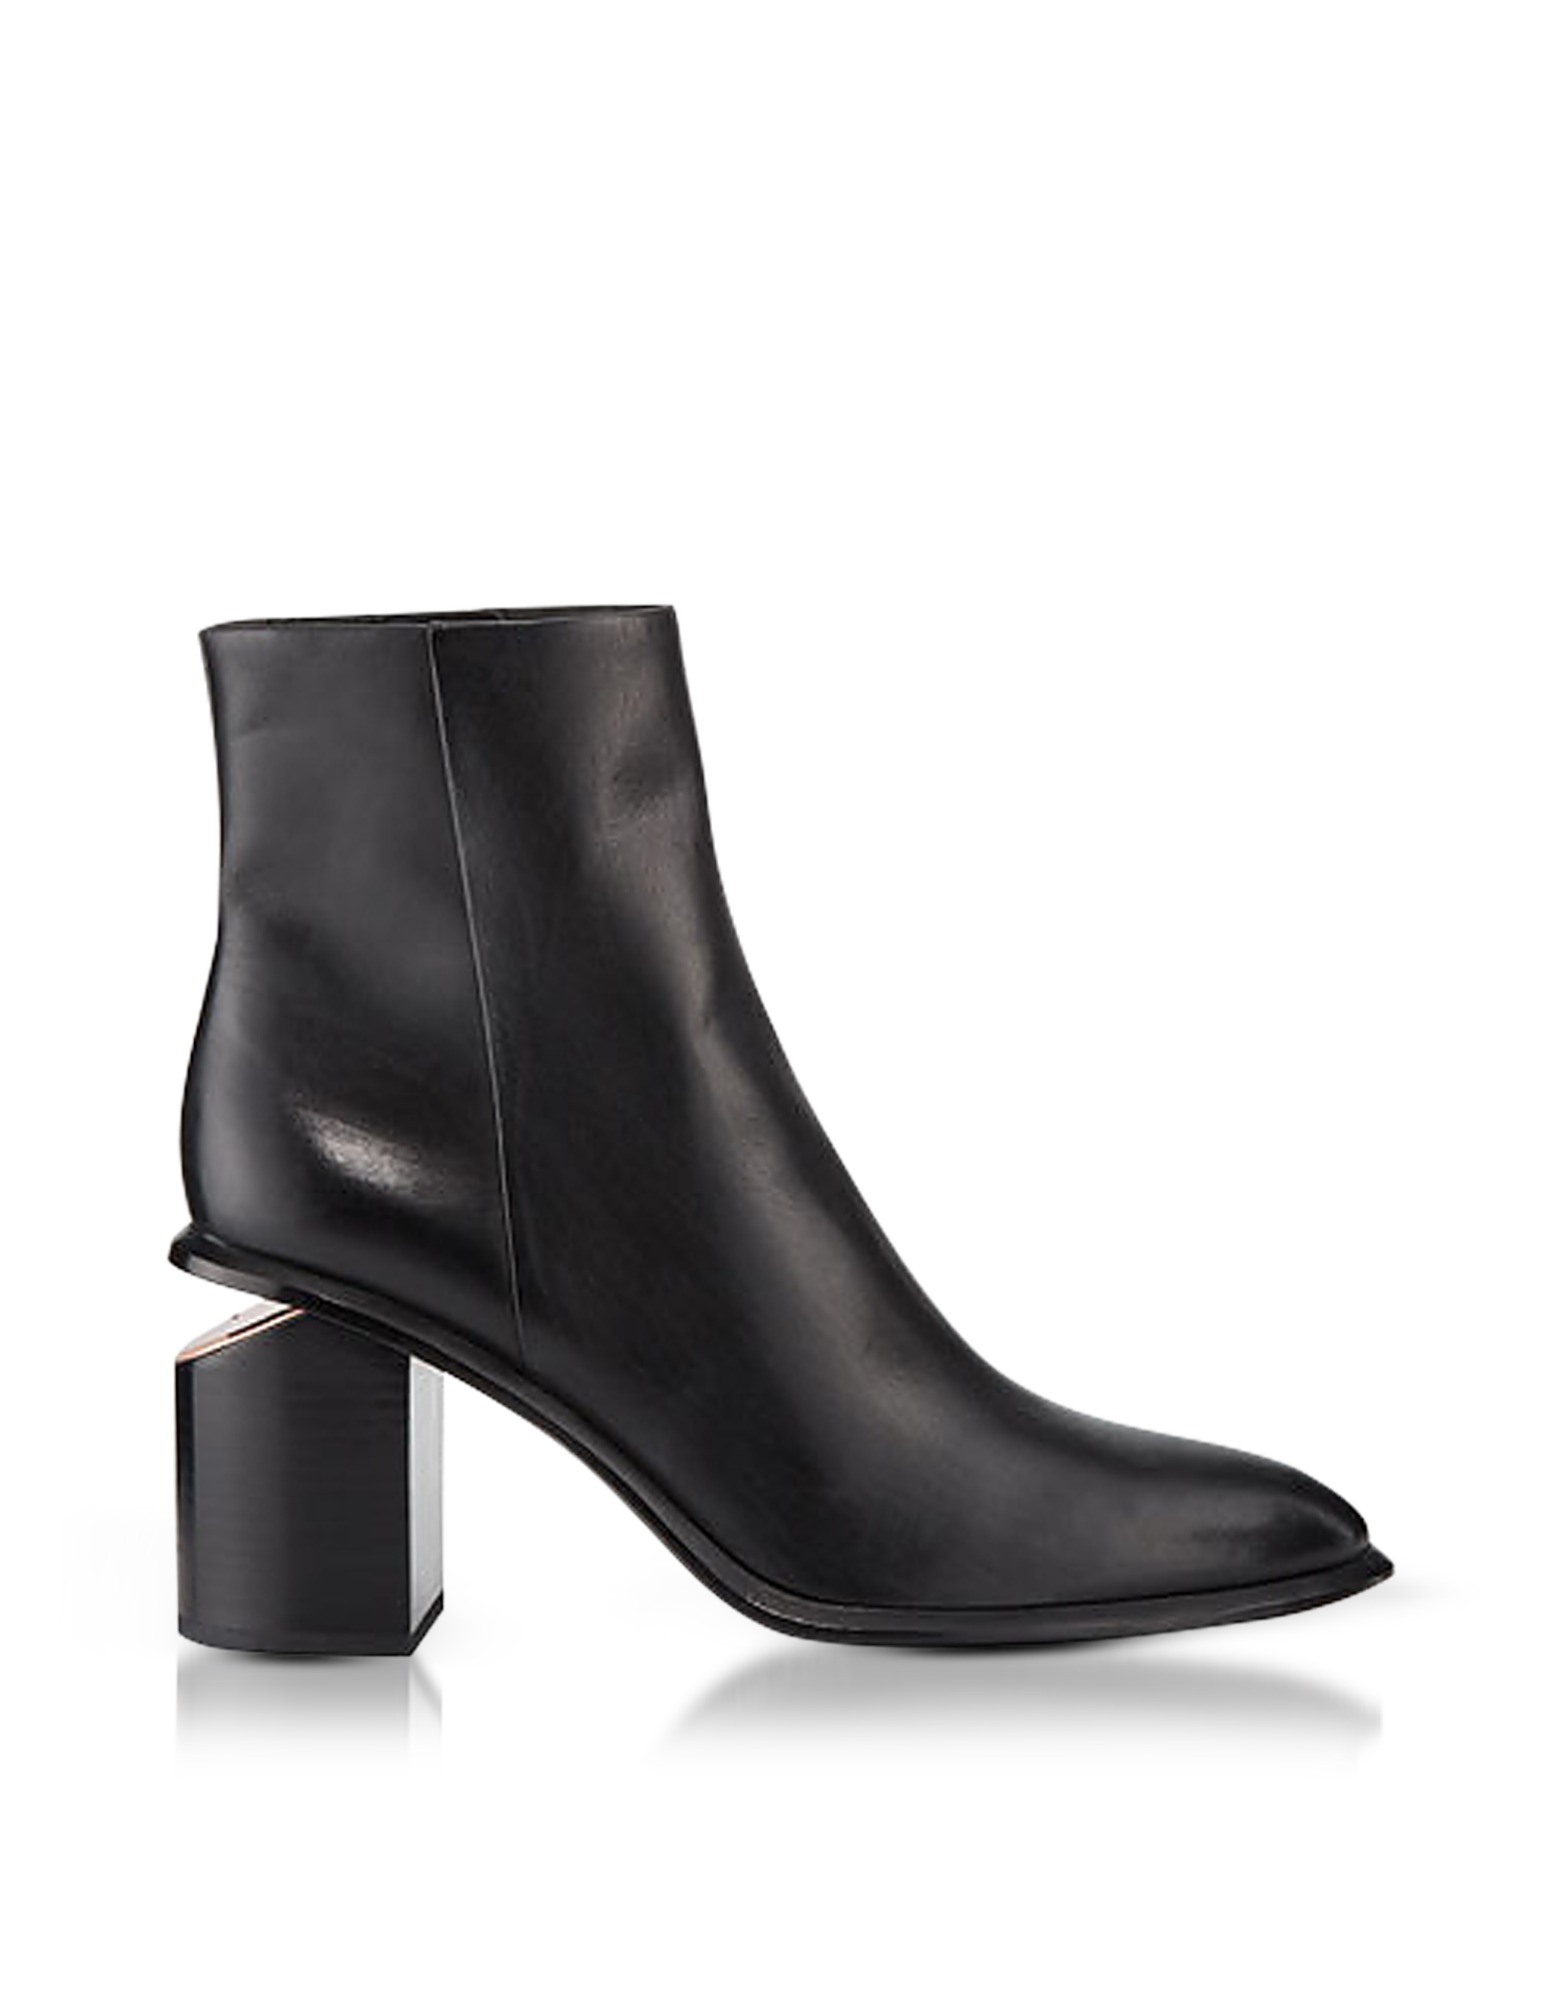 Image of Anna Black Calf Leather Boots